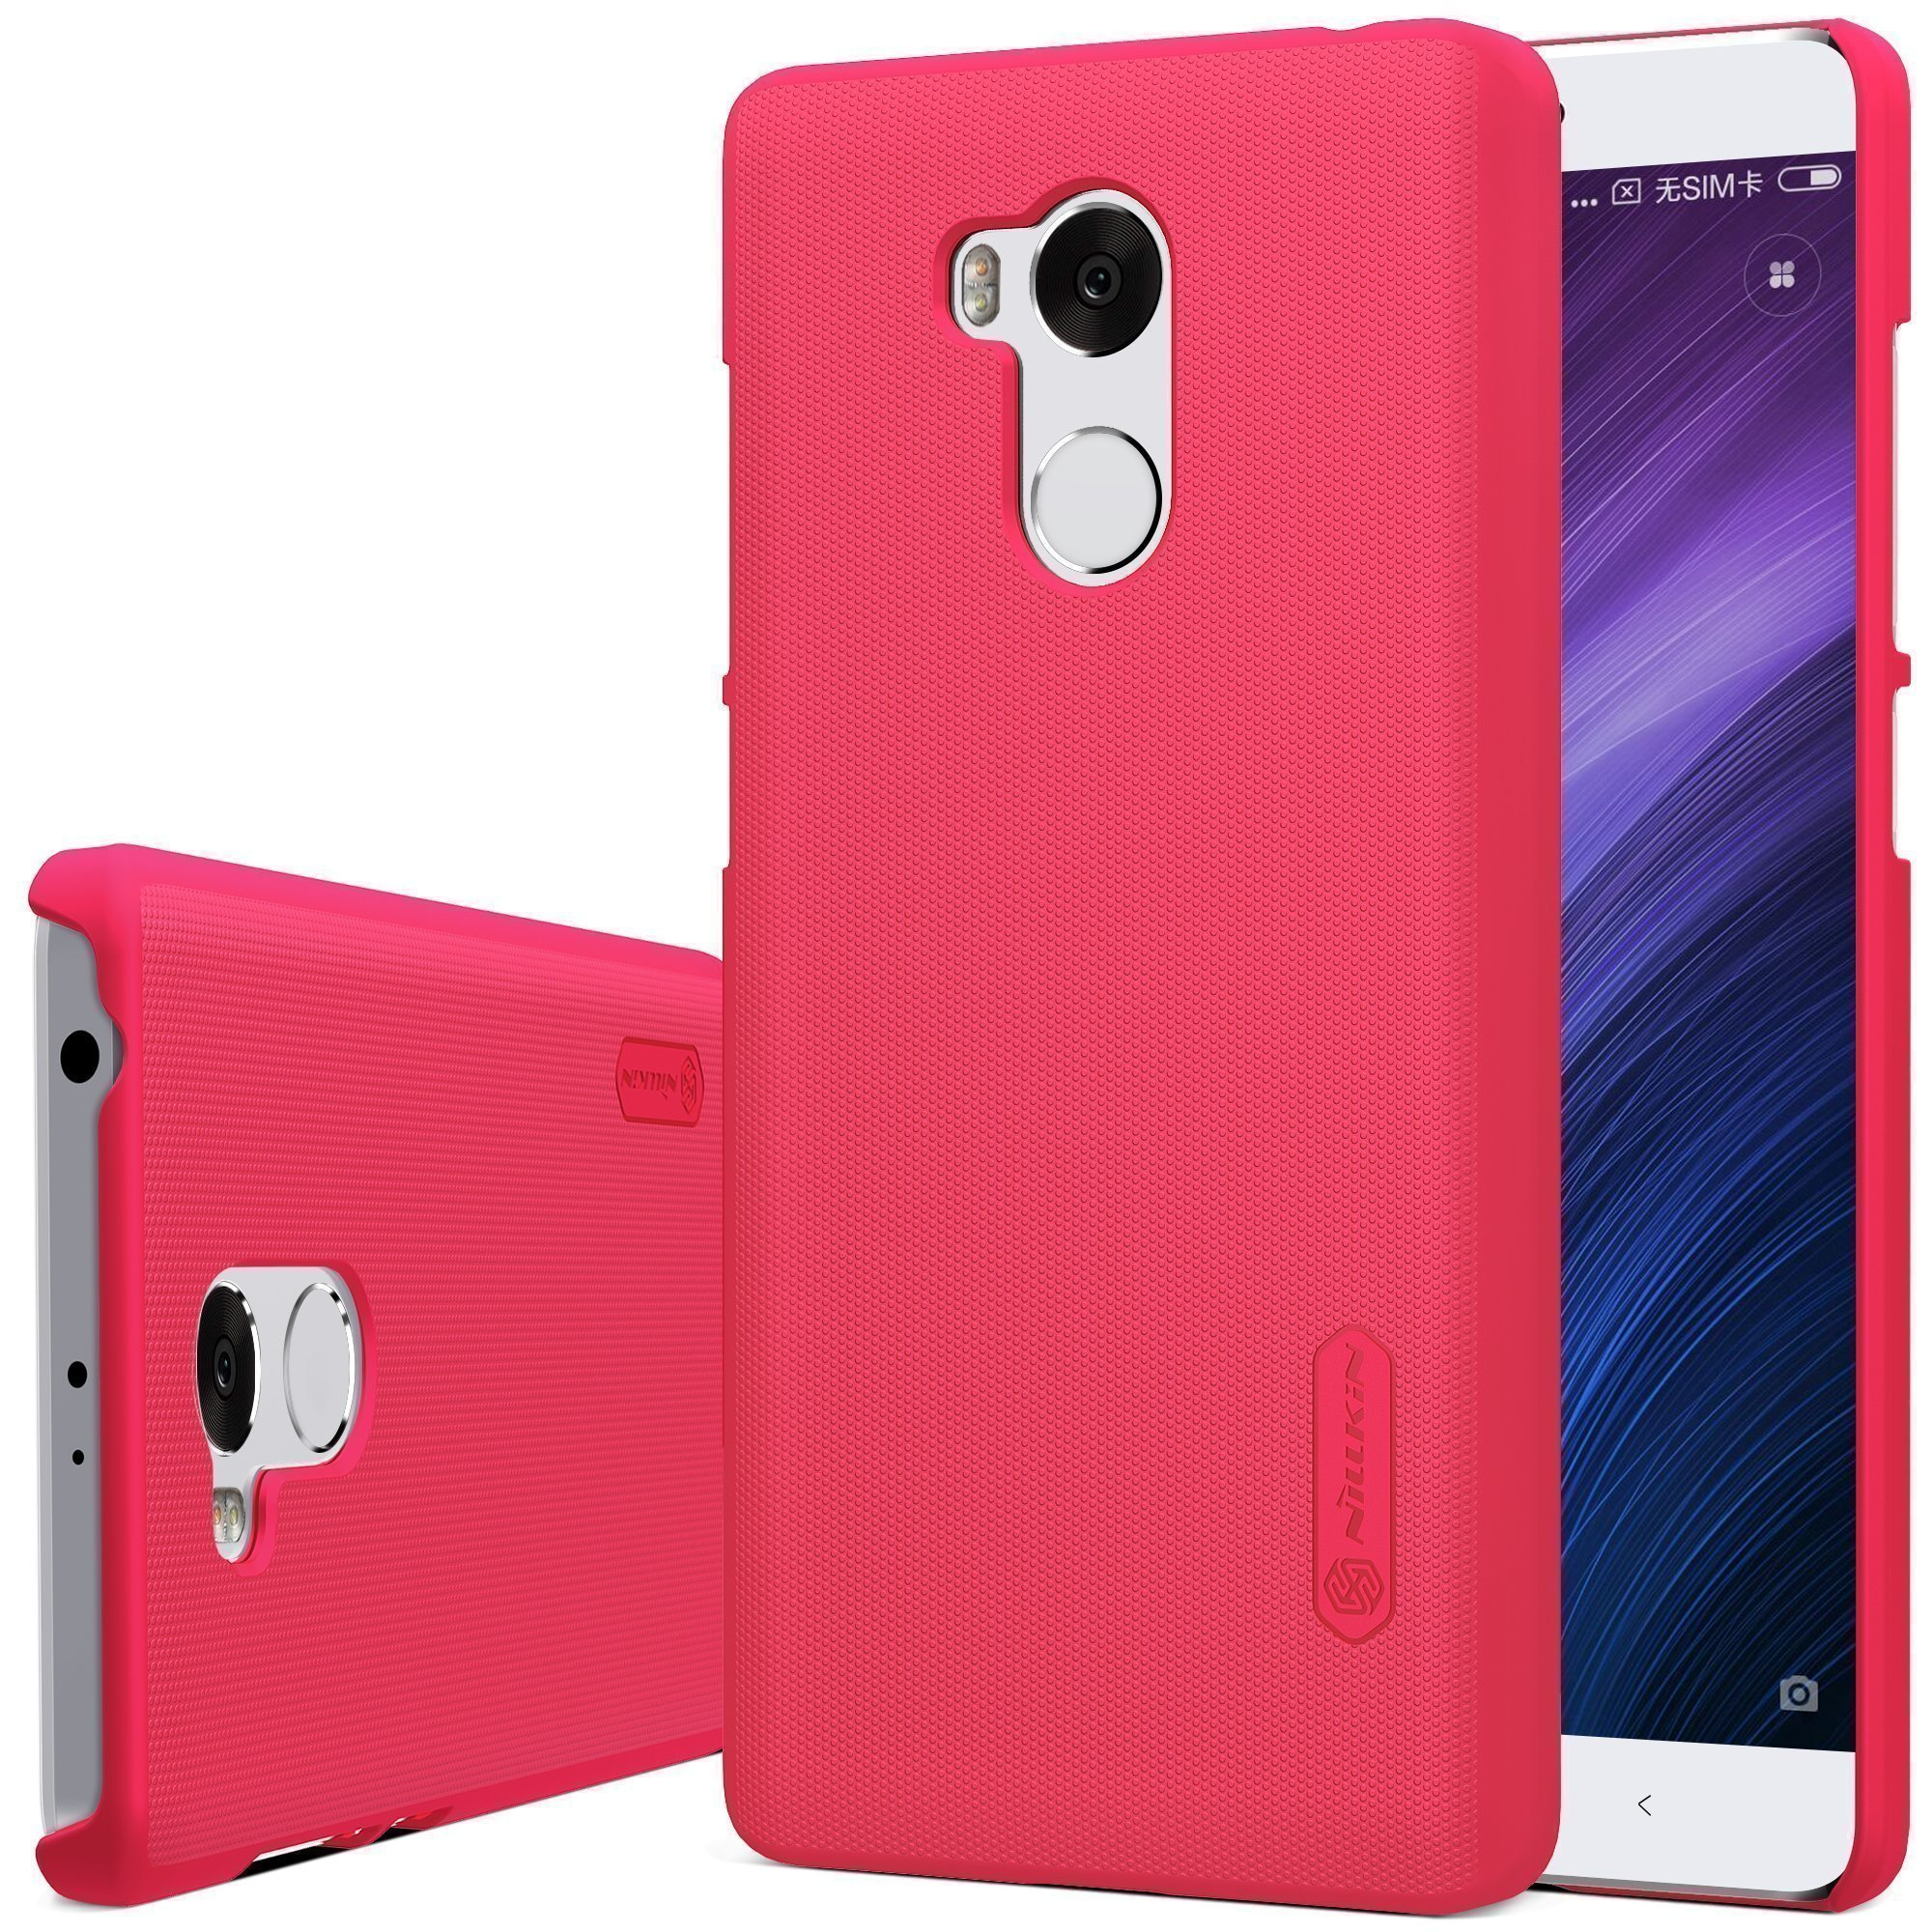 Чехол-бампер для Xiaomi Redmi 4 Pro Nillkin Super Frosted Shield Case (Red/Красный)